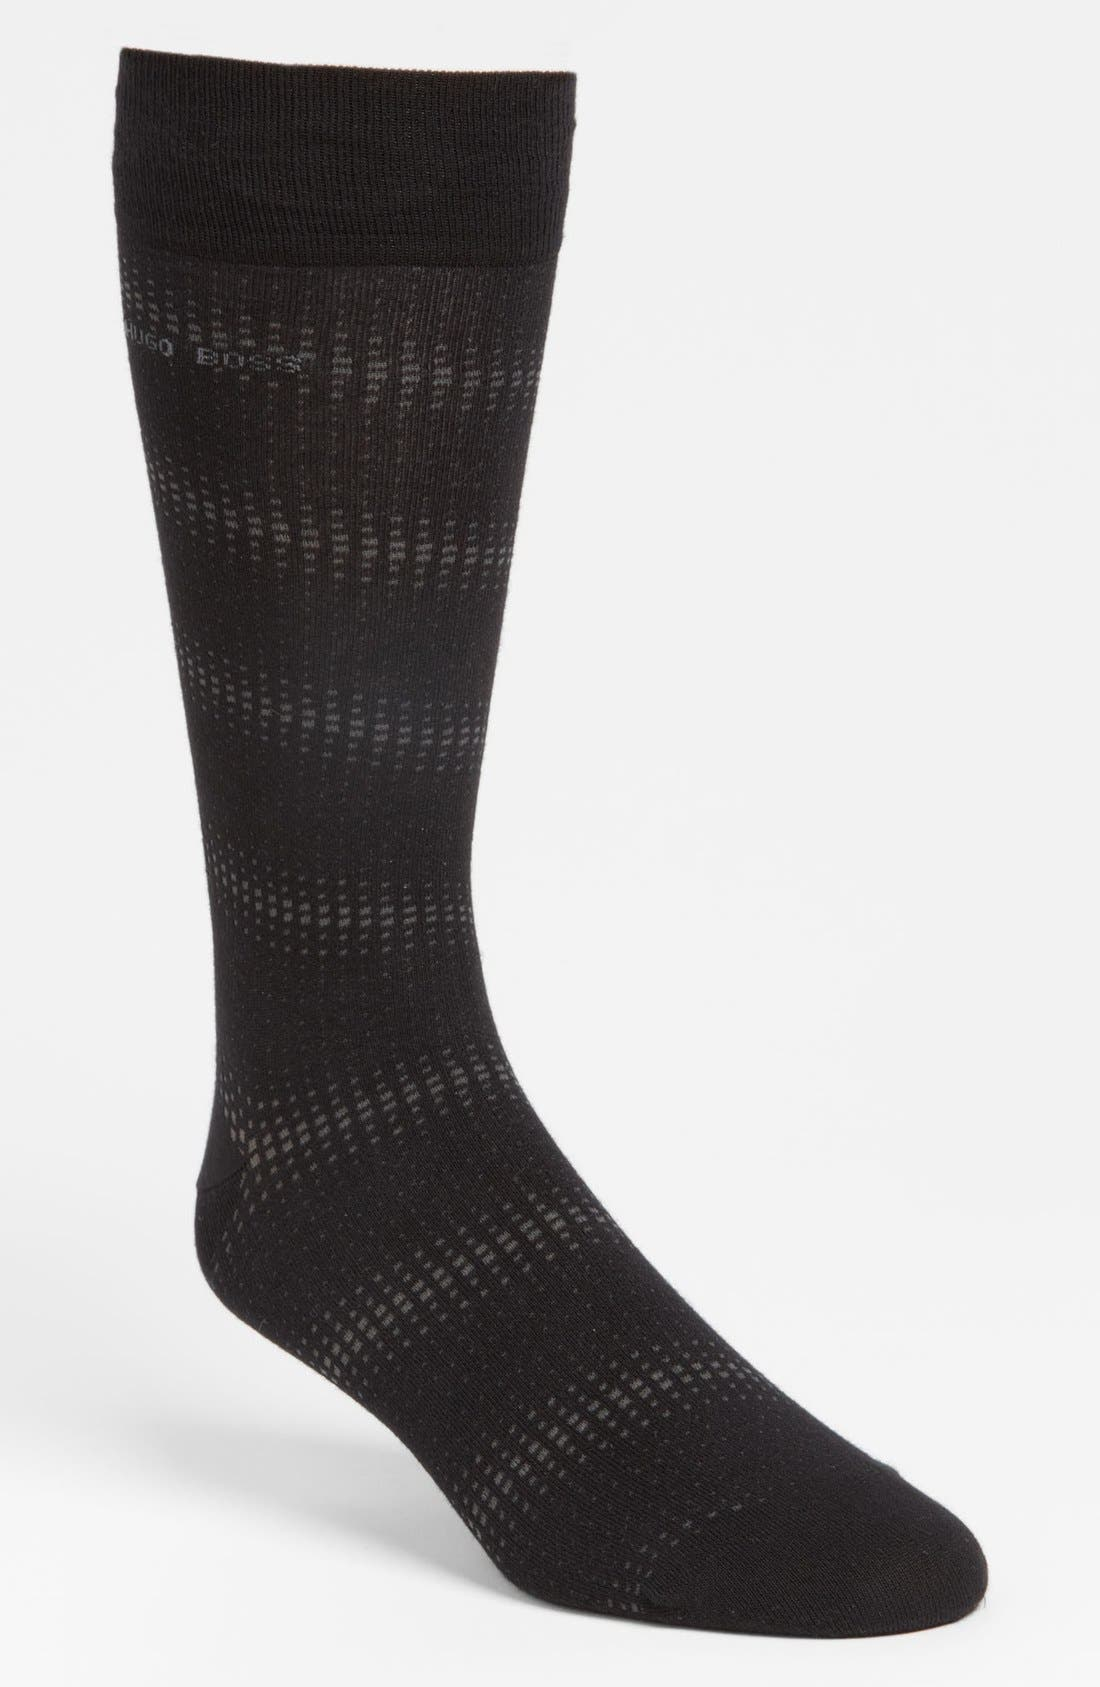 Alternate Image 1 Selected - BOSS Black Cotton Blend Socks